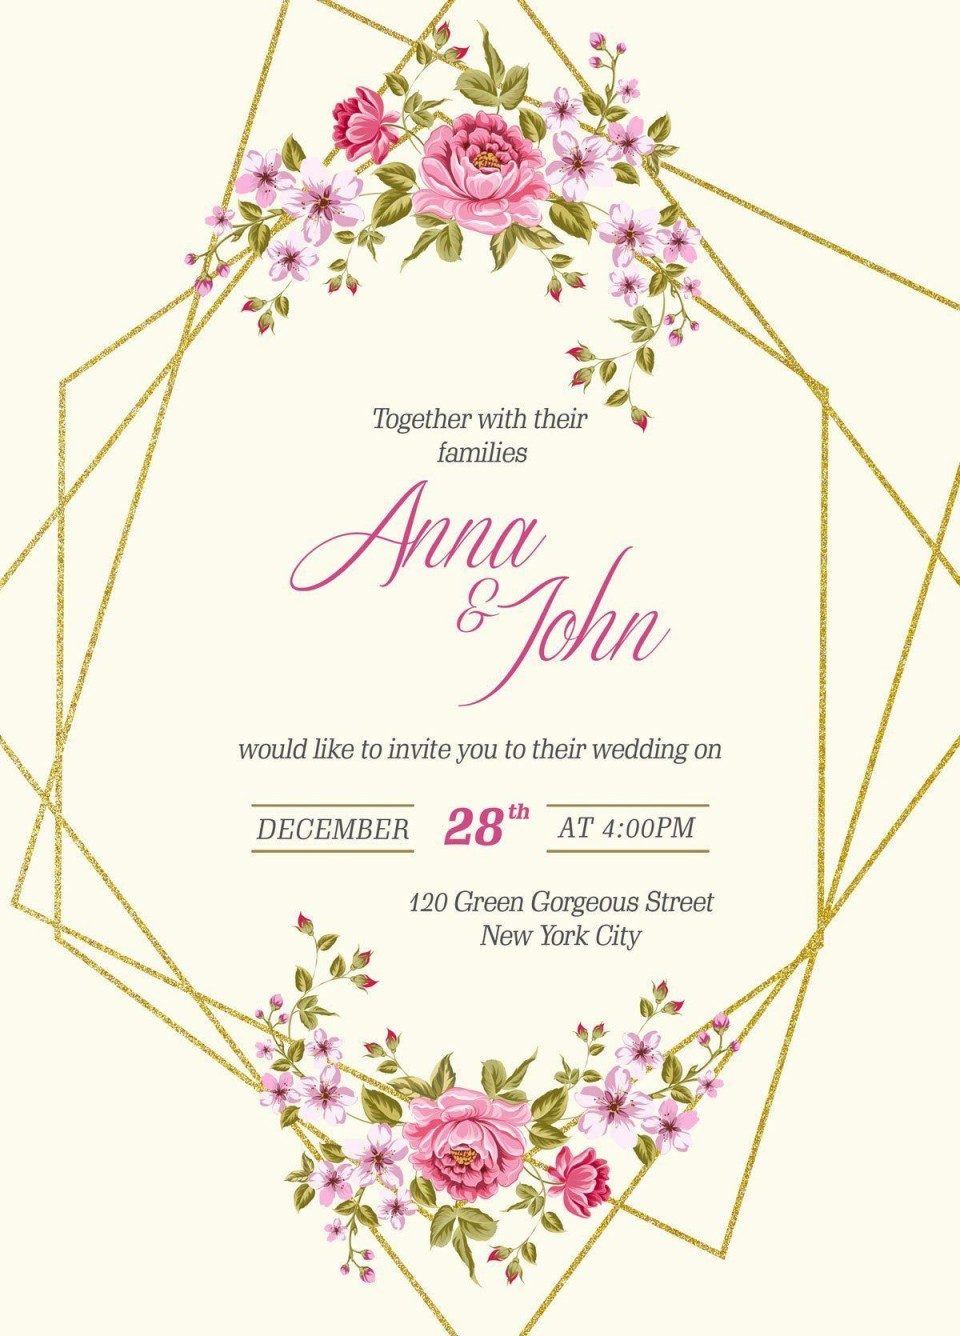 005 Wondrou Download Free Wedding Invitation Card Template Concept  Marriage Format Psd960